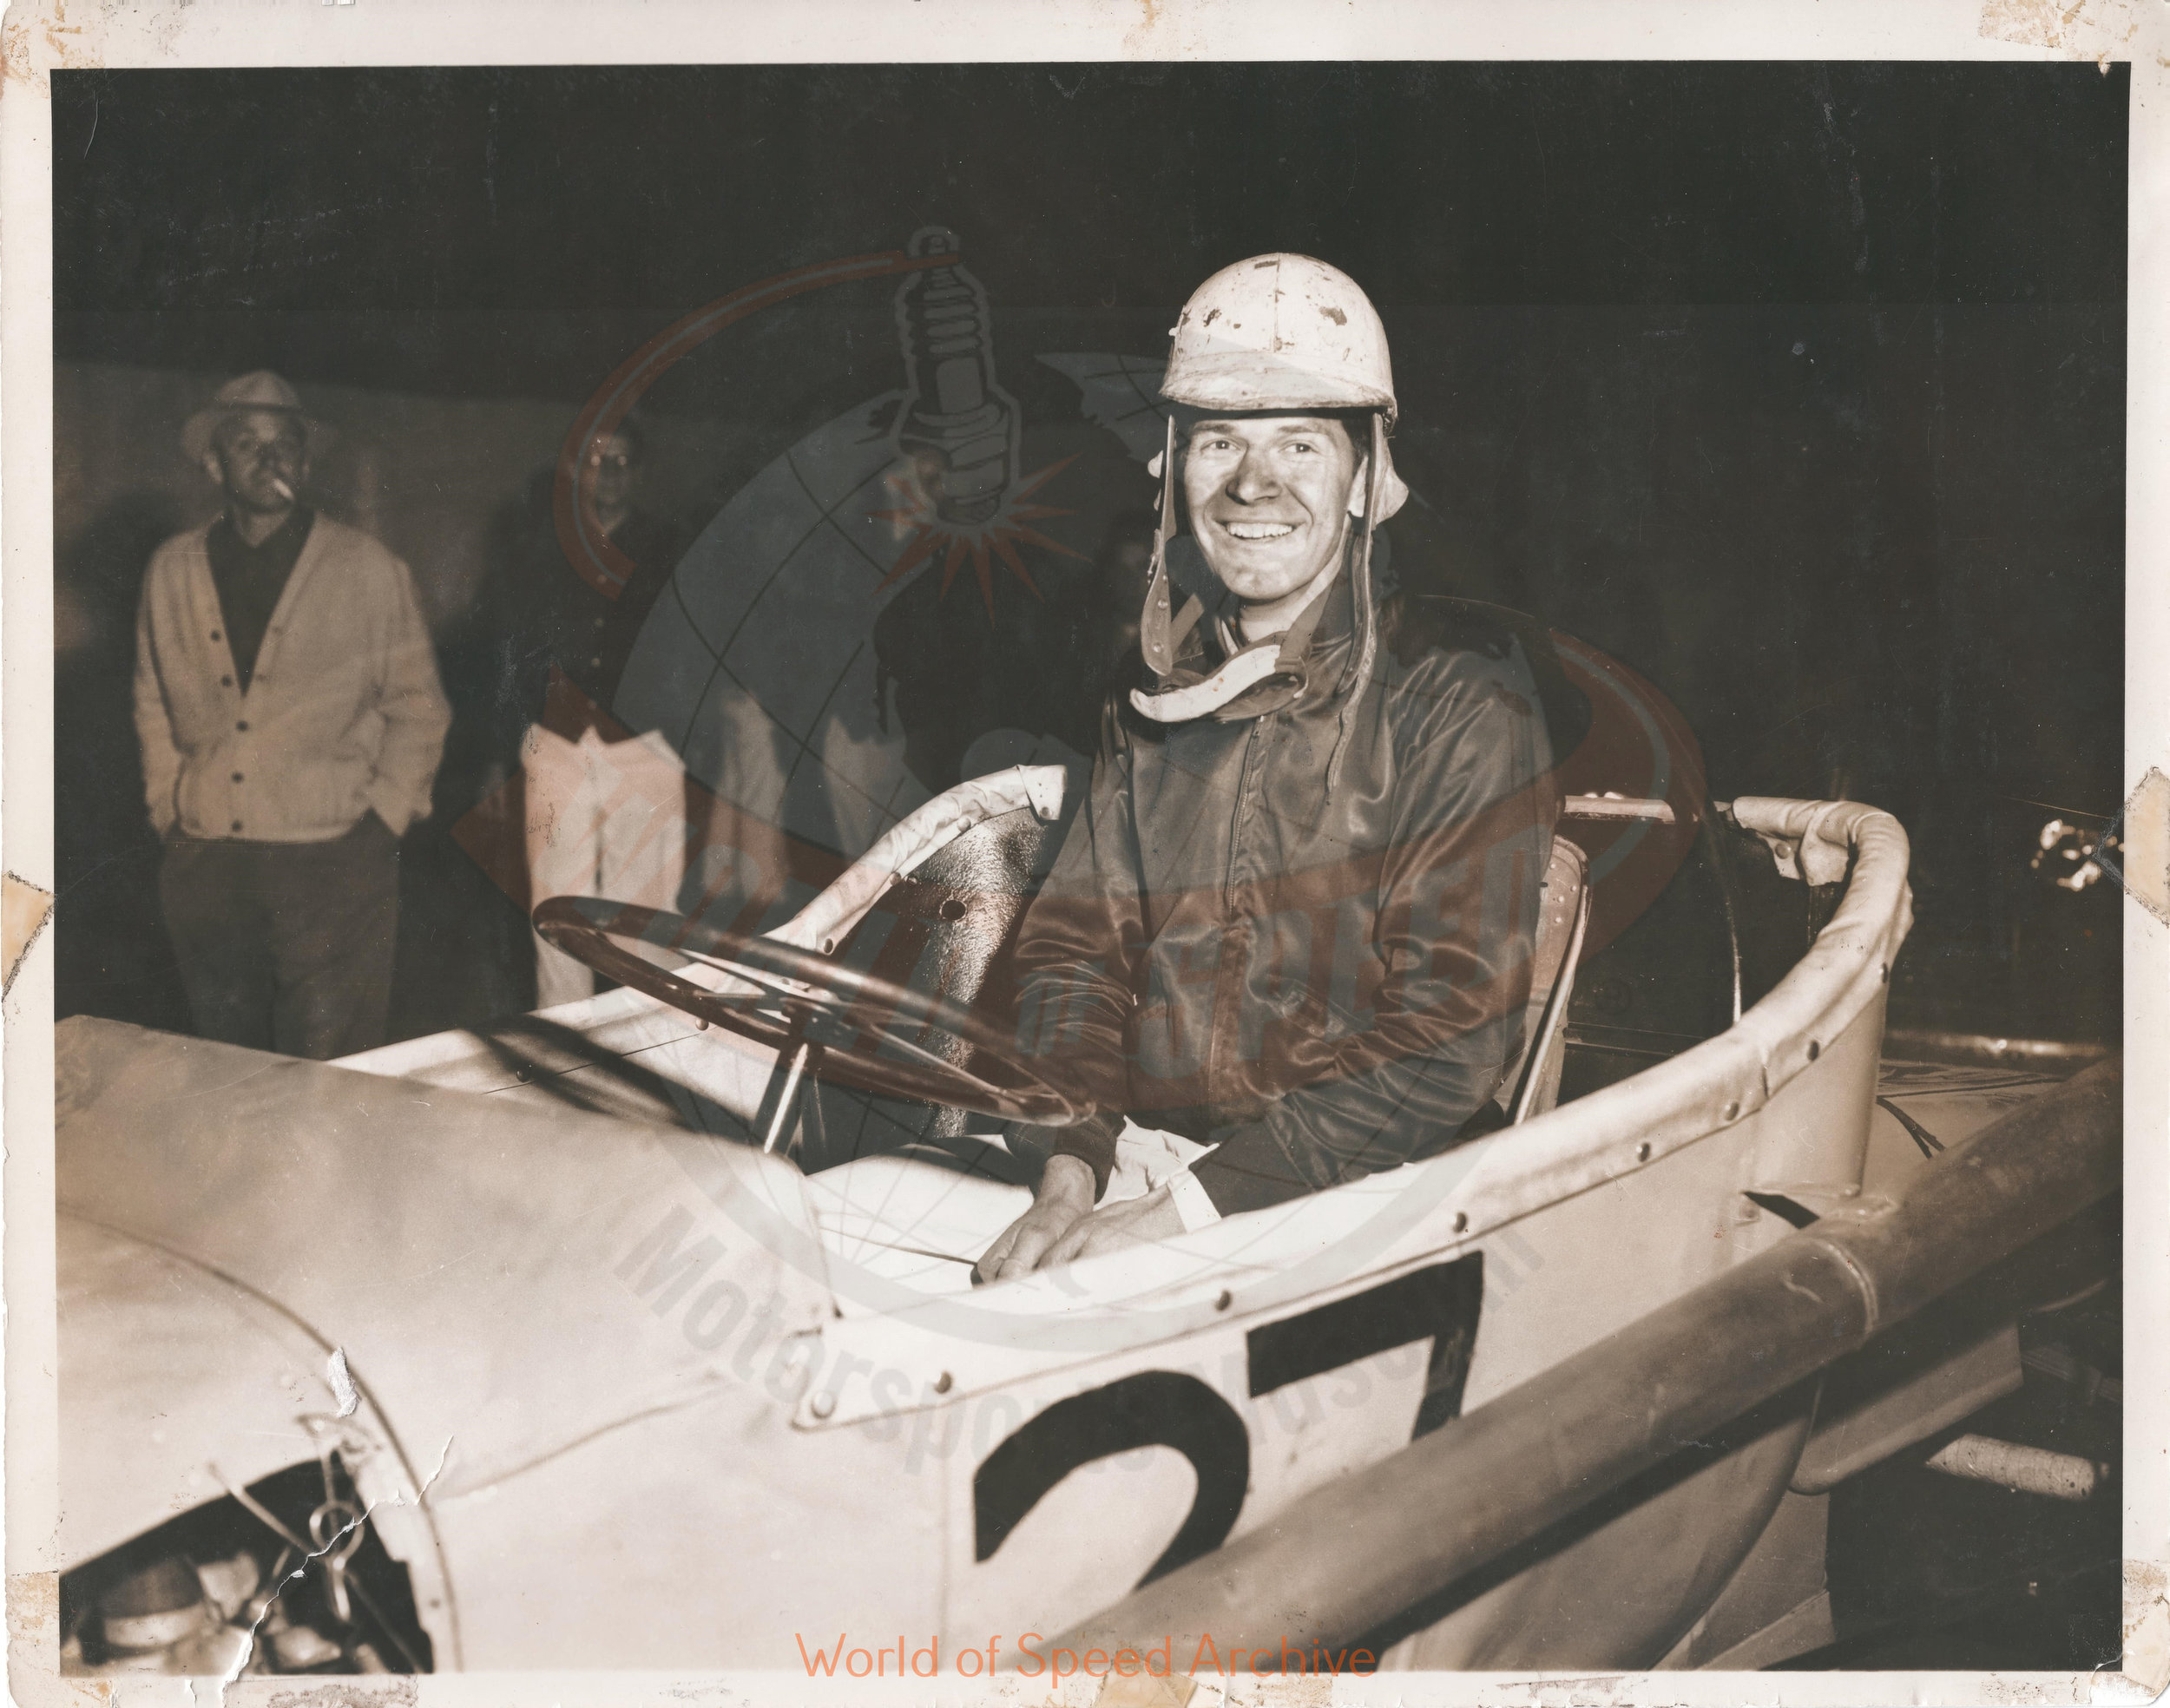 JG.01.A - Len Sutton's first race, Salem Hollywood Bowl 1950